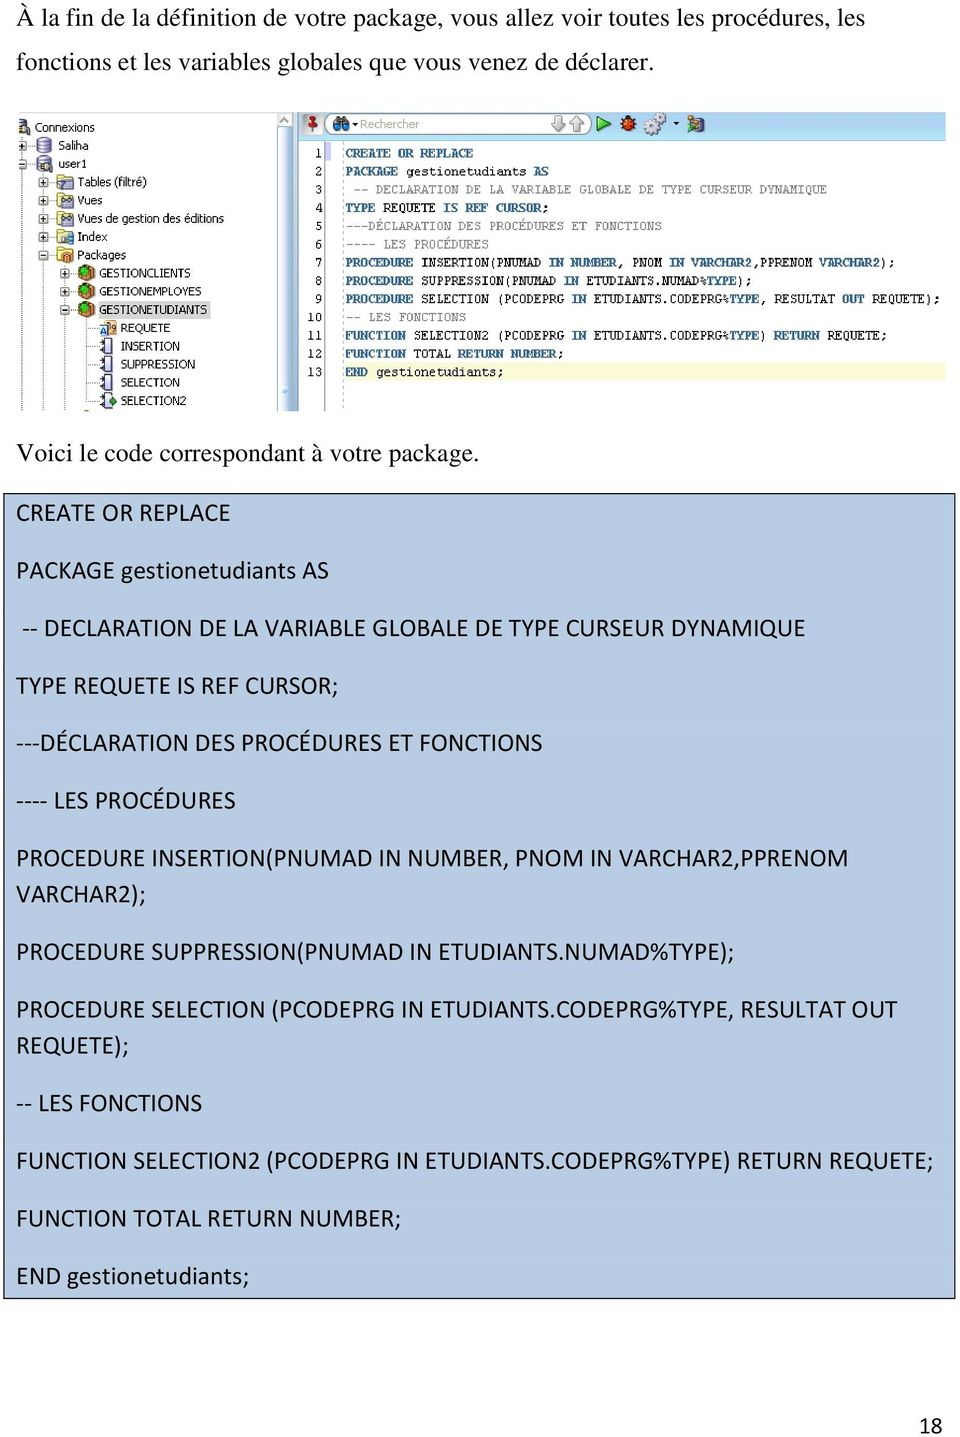 CREATE OR REPLACE PACKAGE gestionetudiants AS -- DECLARATION DE LA VARIABLE GLOBALE DE TYPE CURSEUR DYNAMIQUE TYPE REQUETE IS REF CURSOR; ---DÉCLARATION DES PROCÉDURES ET FONCTIONS ----